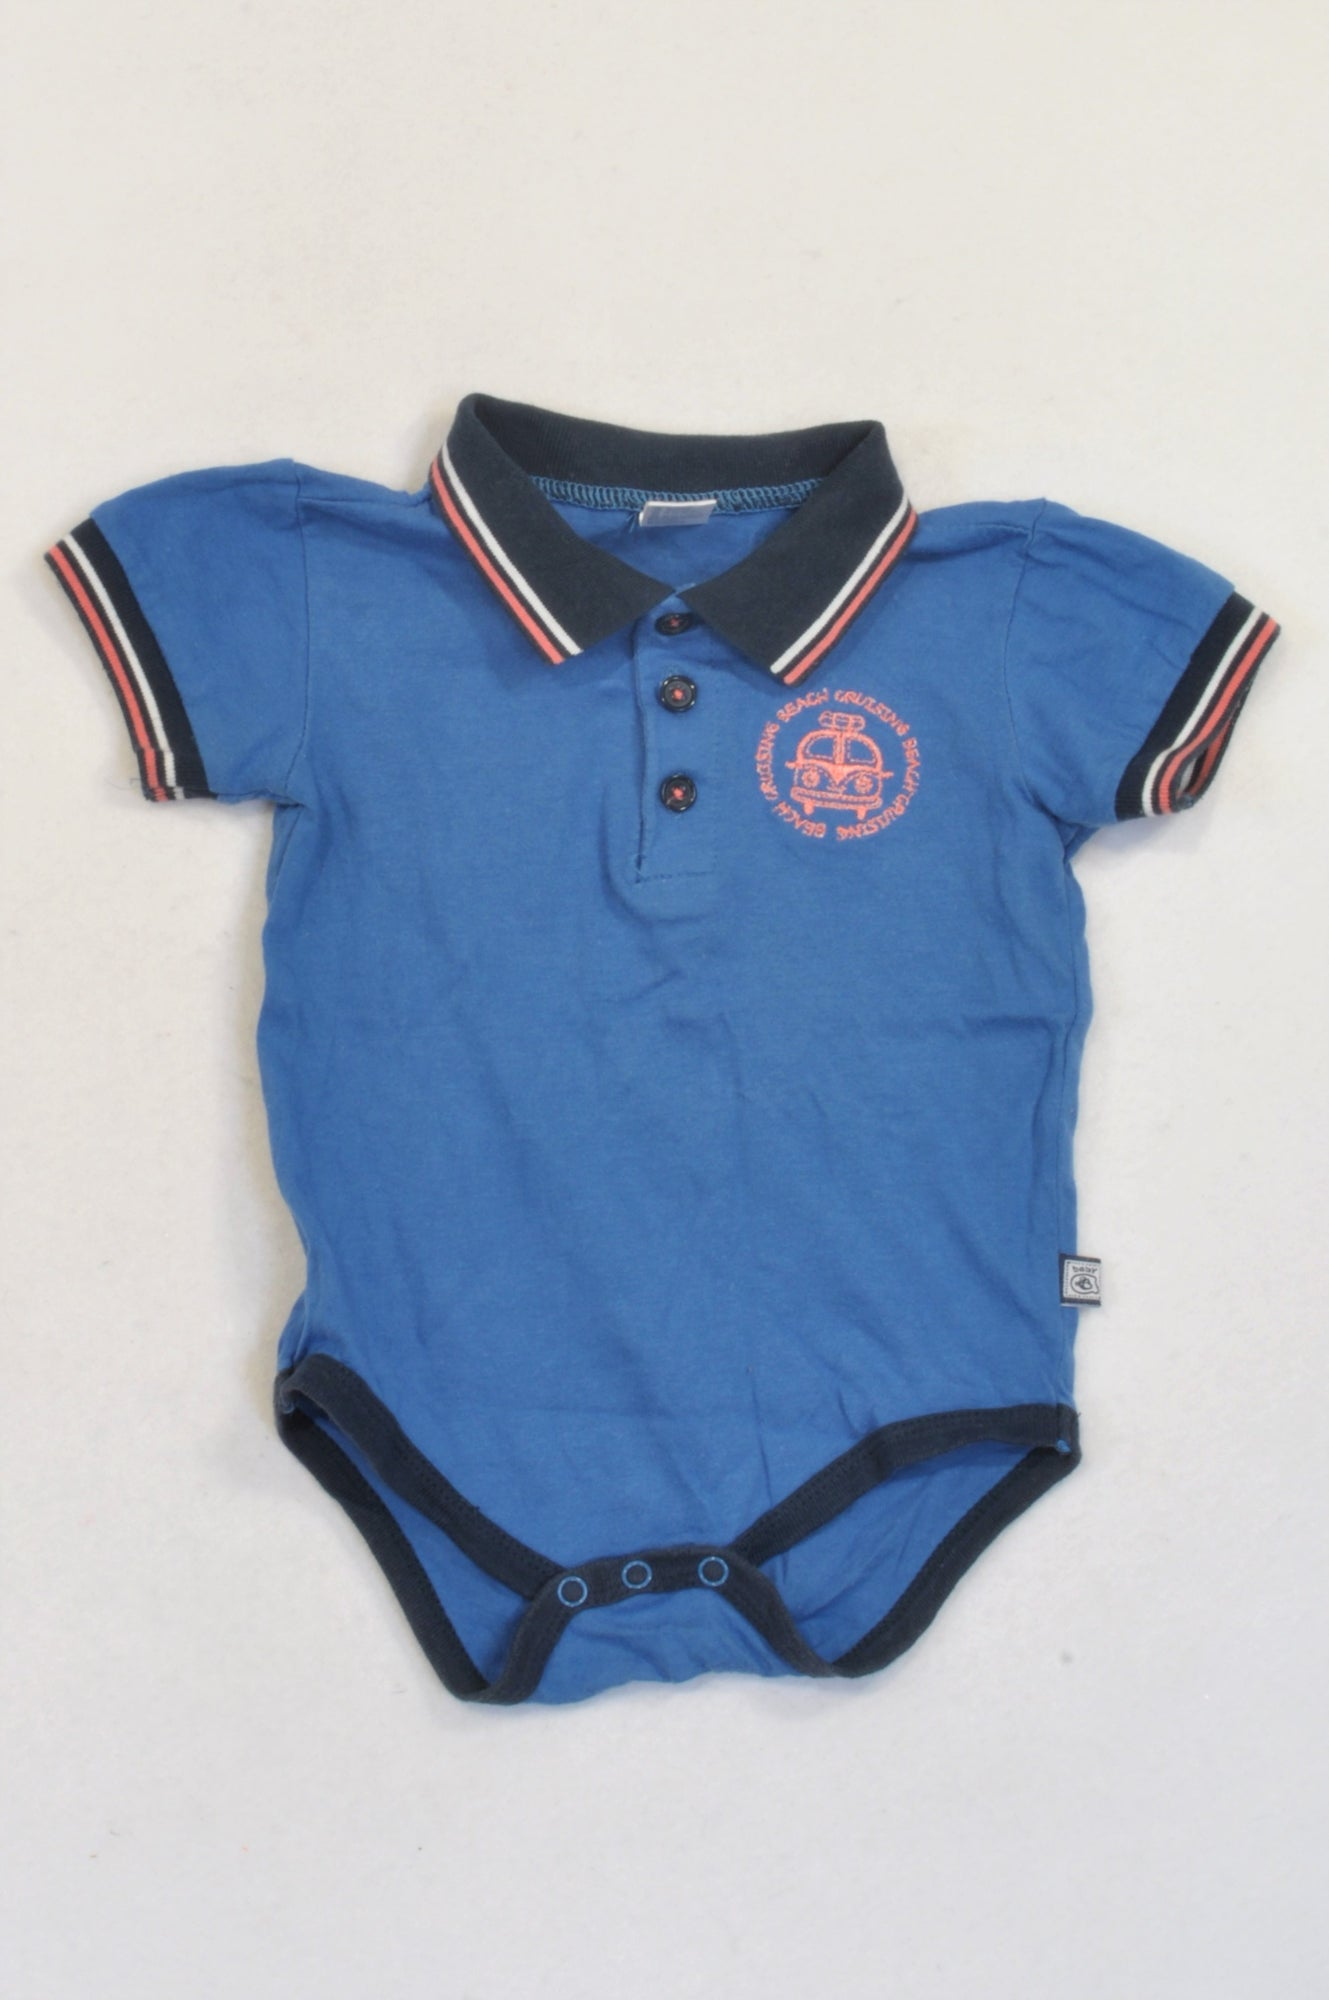 Ackermans Blue Collared Navy Trim Baby Grow Boys 6-12 months